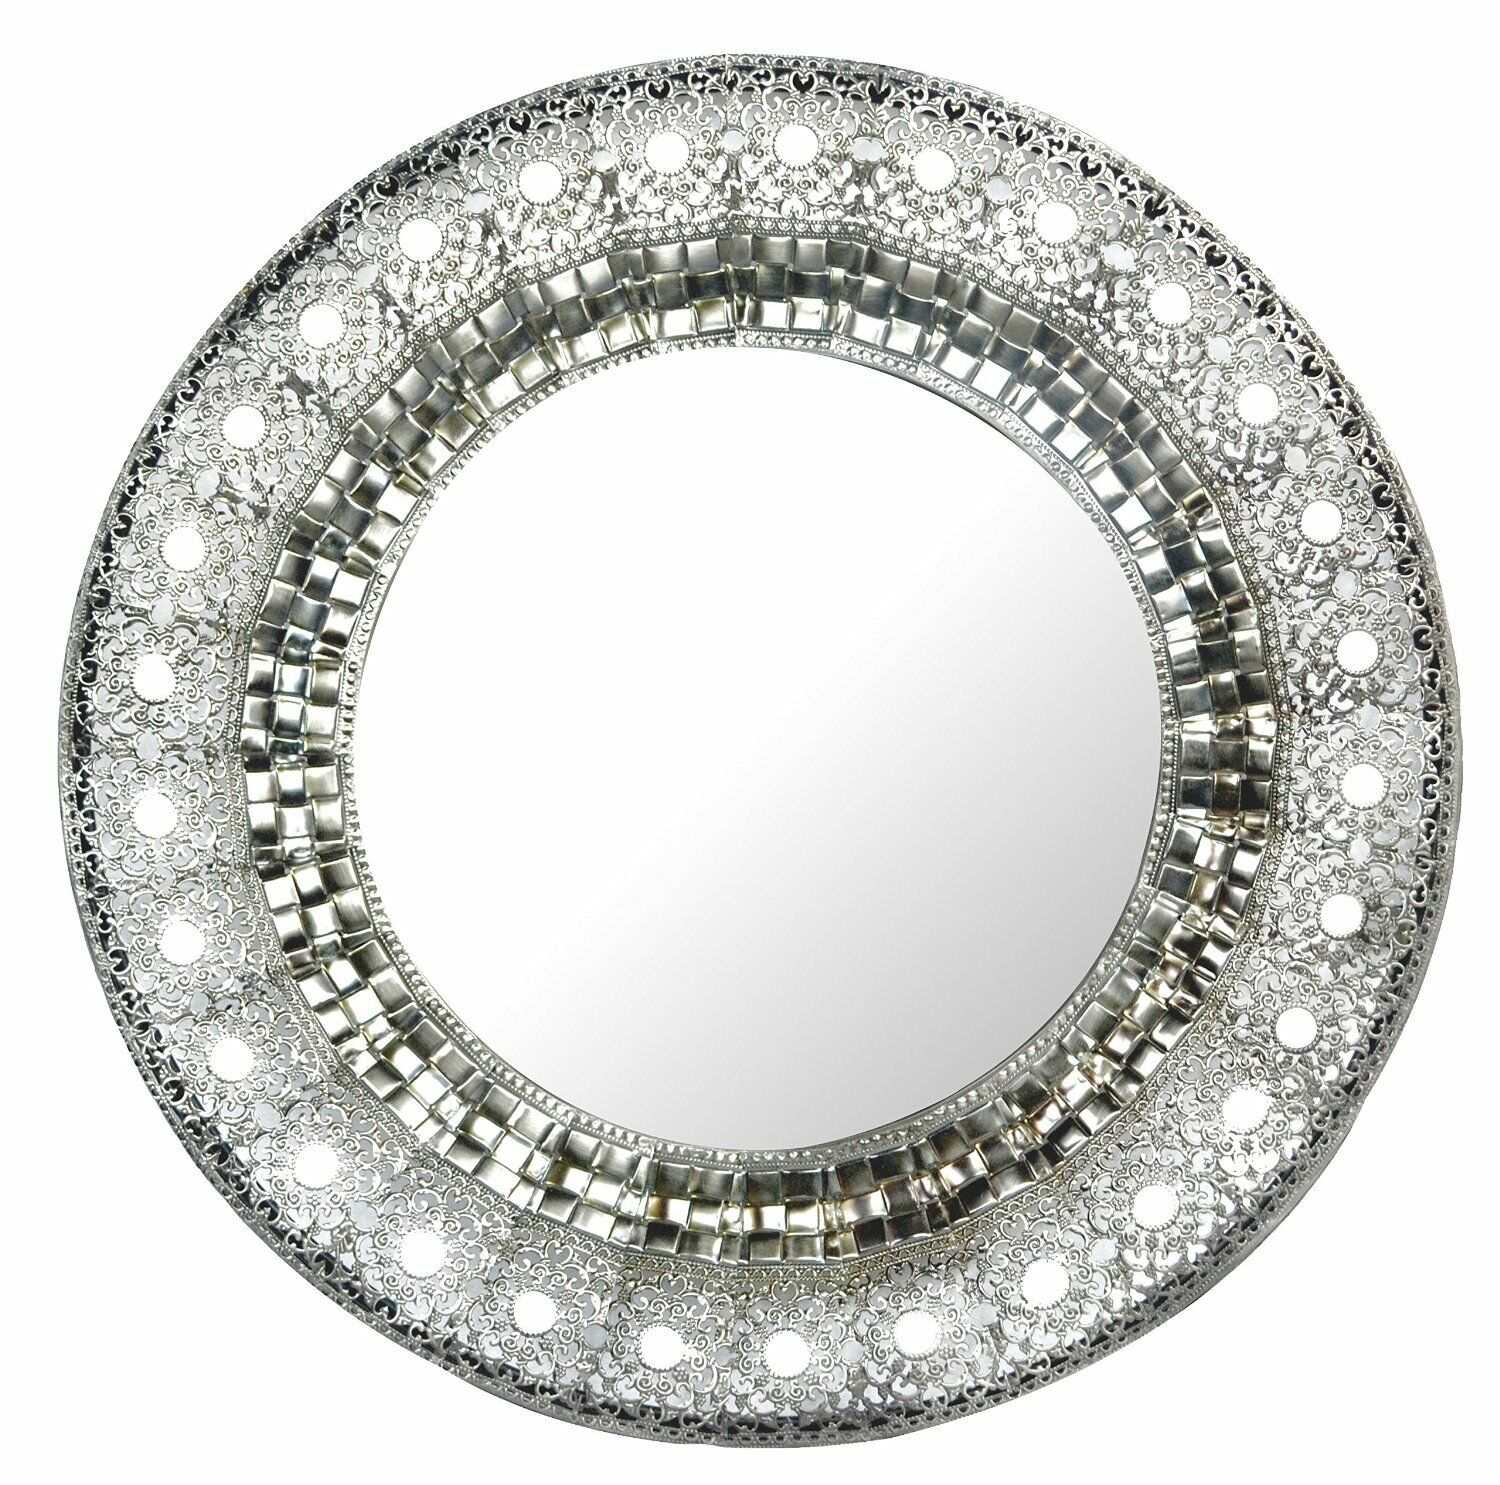 lulu decor oriental round silver metal wall mirror frame size 19. Black Bedroom Furniture Sets. Home Design Ideas